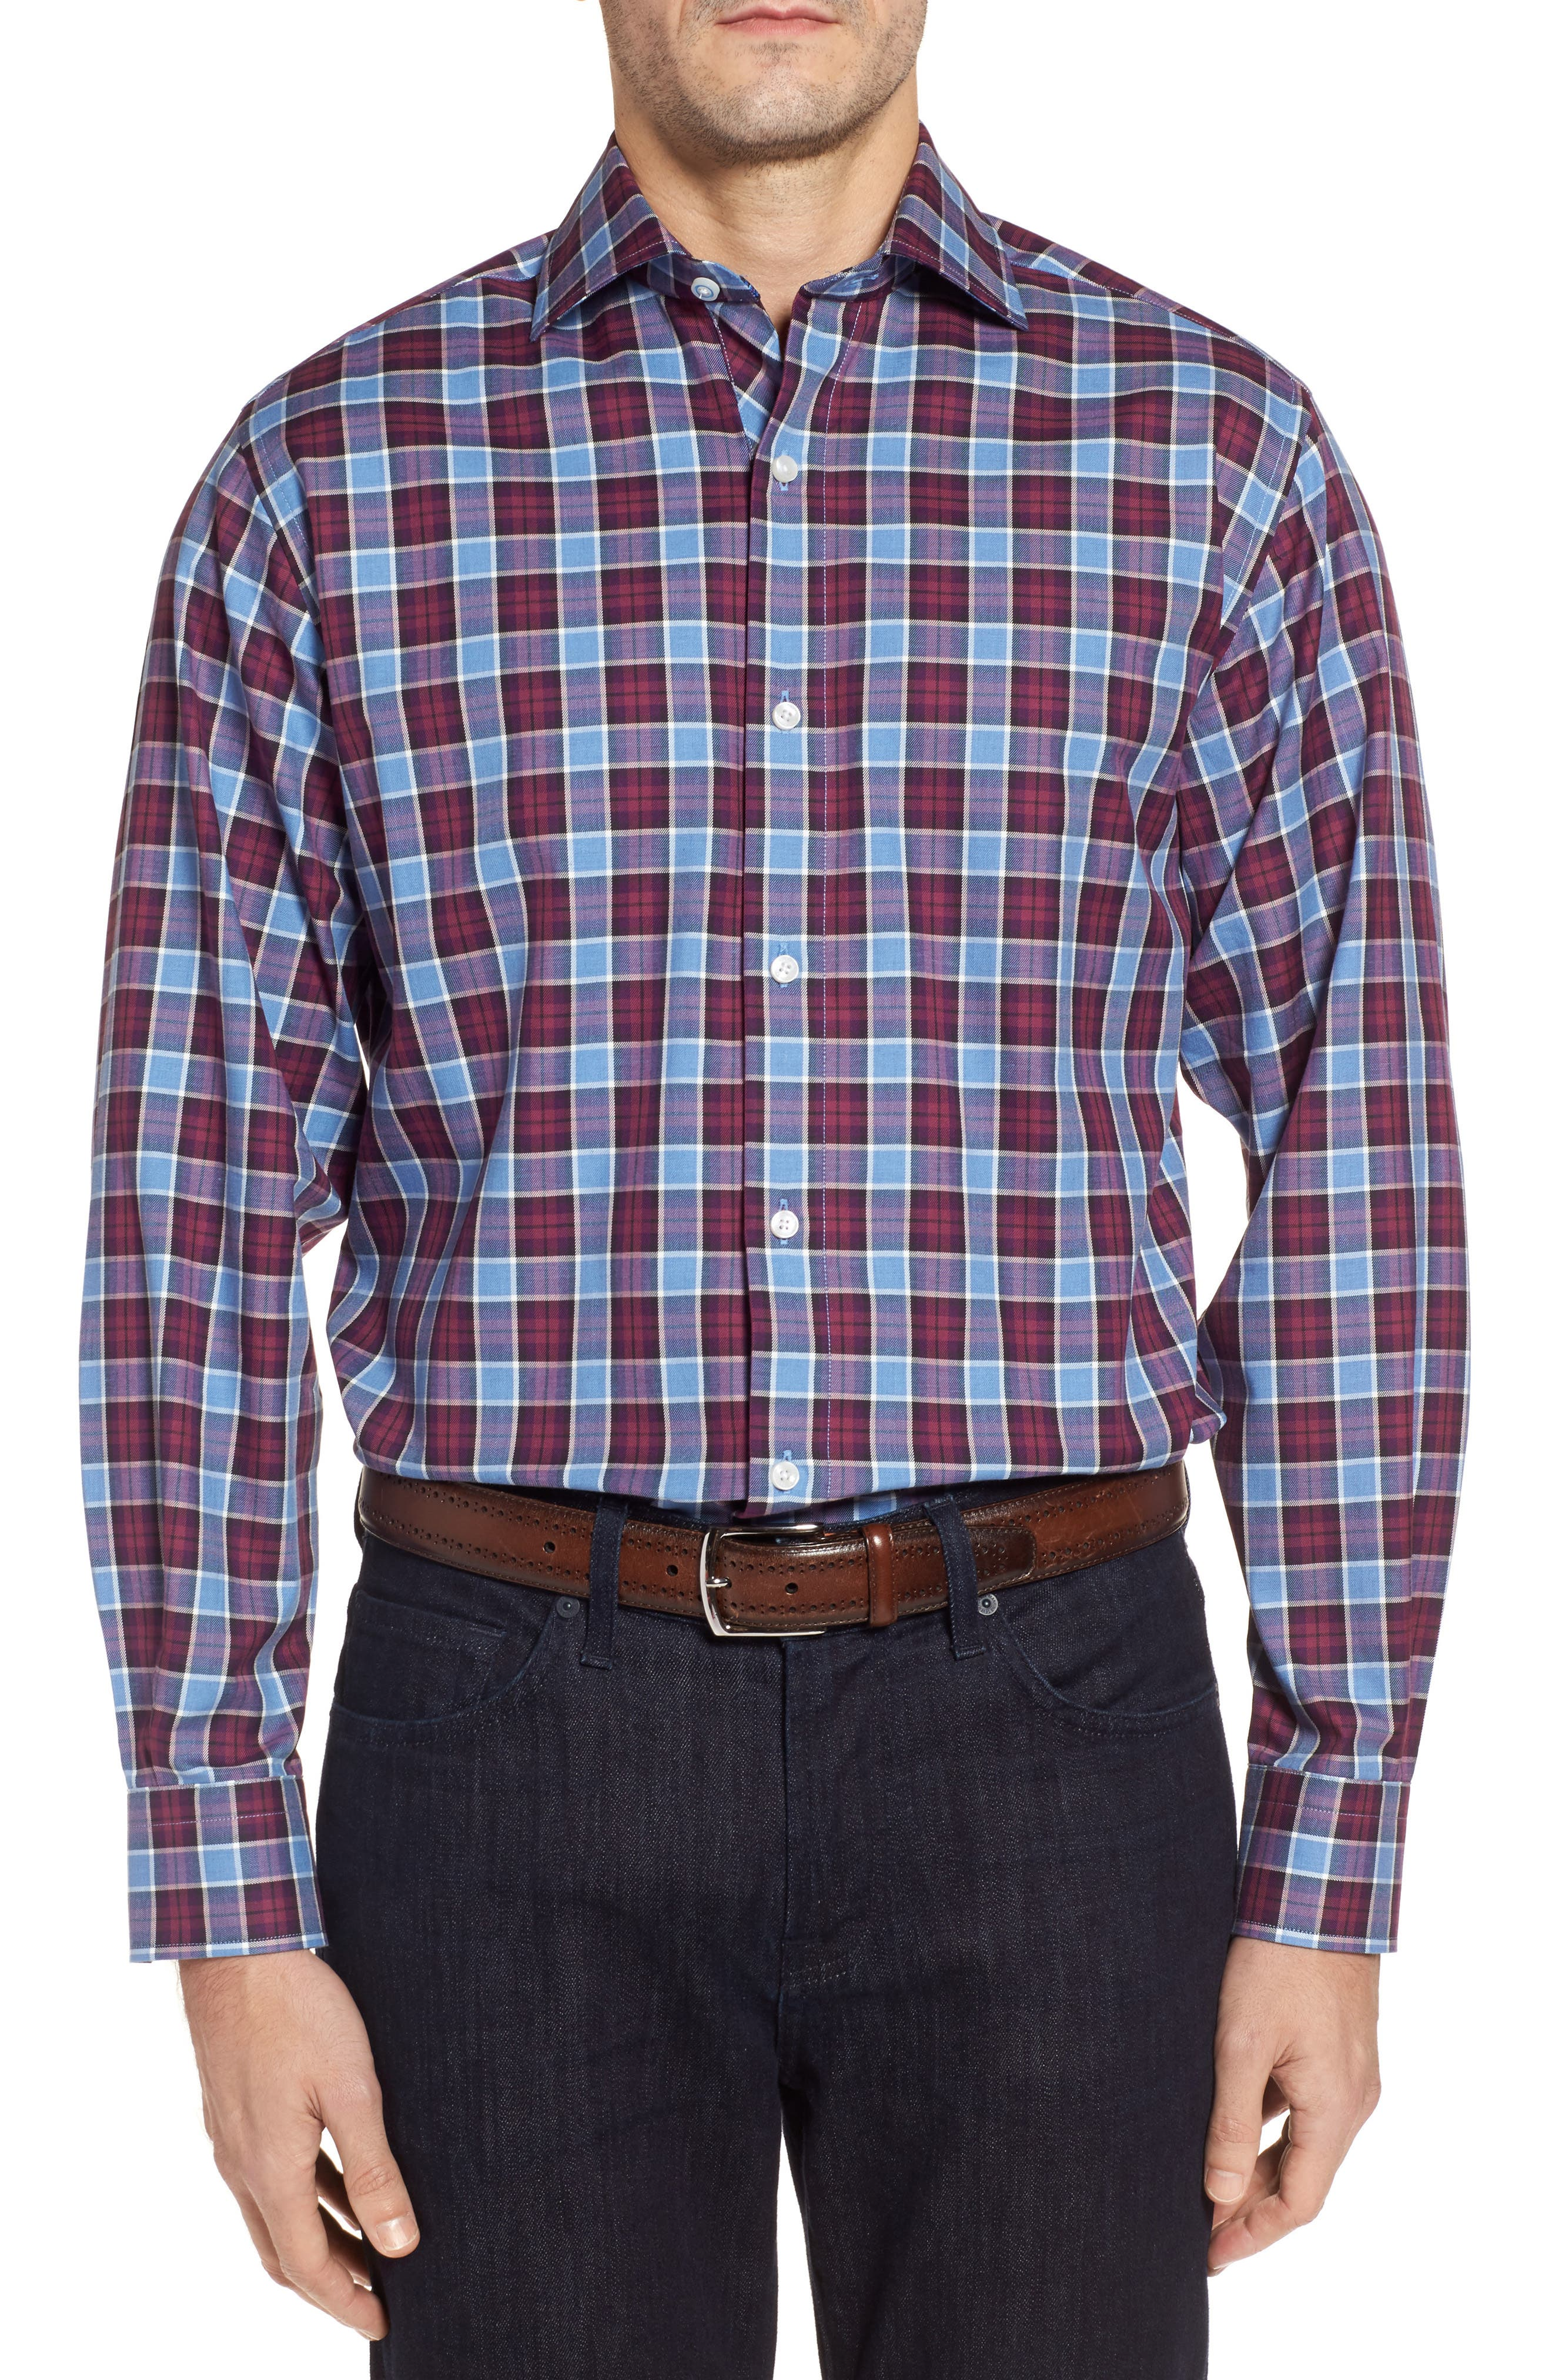 Alternate Image 1 Selected - TailorByrd Campti Regular Fit Plaid Sport Shirt